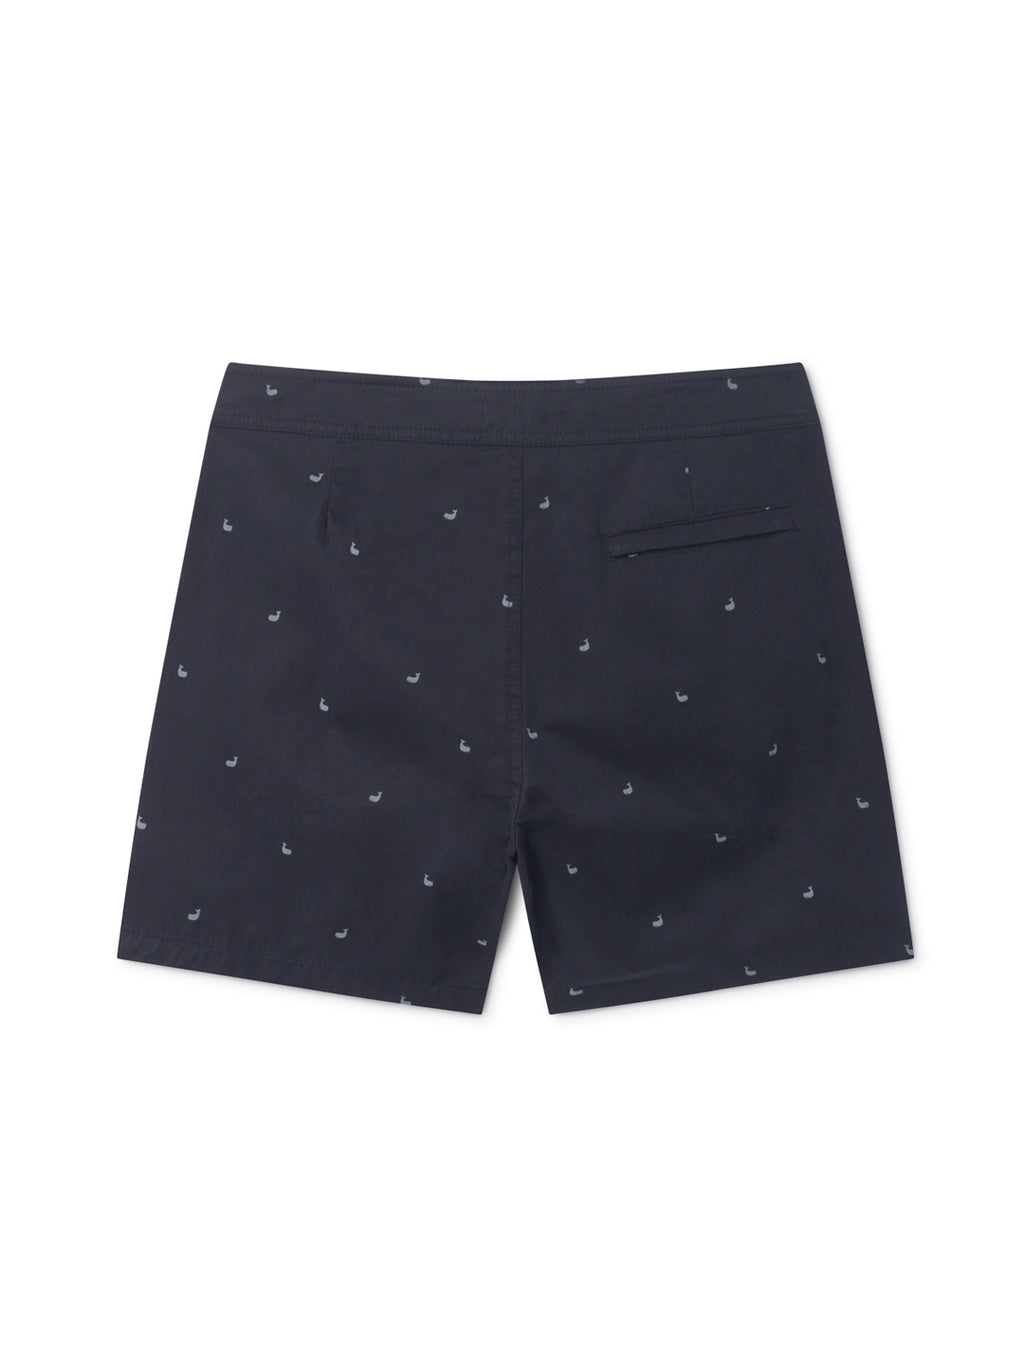 TWOTHIRDS Mens Boardshorts: Hainan Allover - Navy back